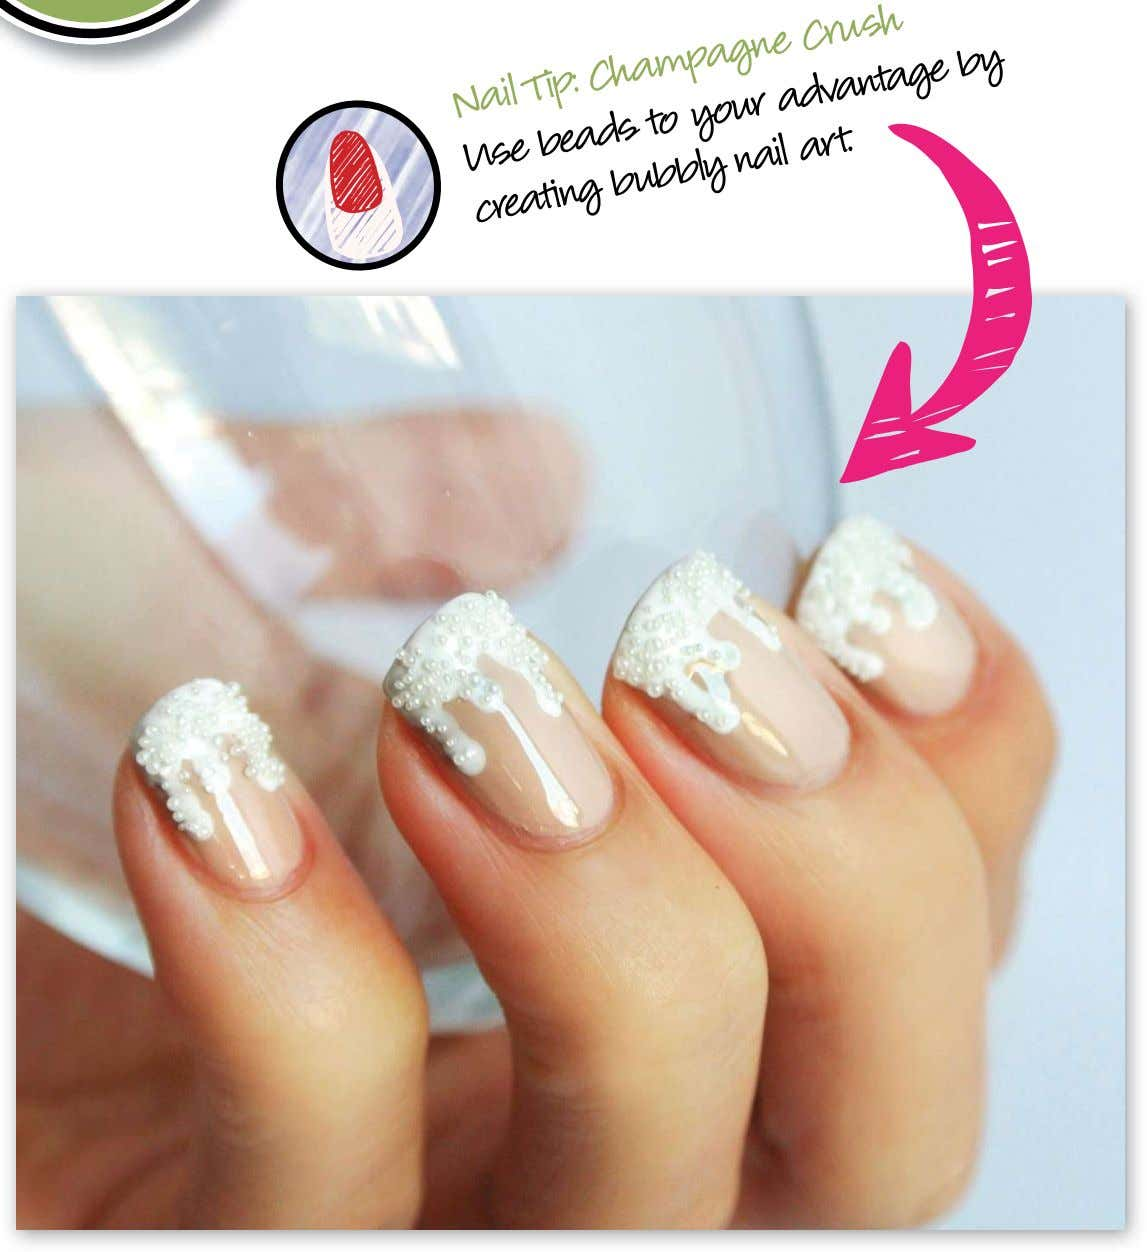 Nail Tip: Champagne art. Crush Use beads to your nail advantage by creating bubbly